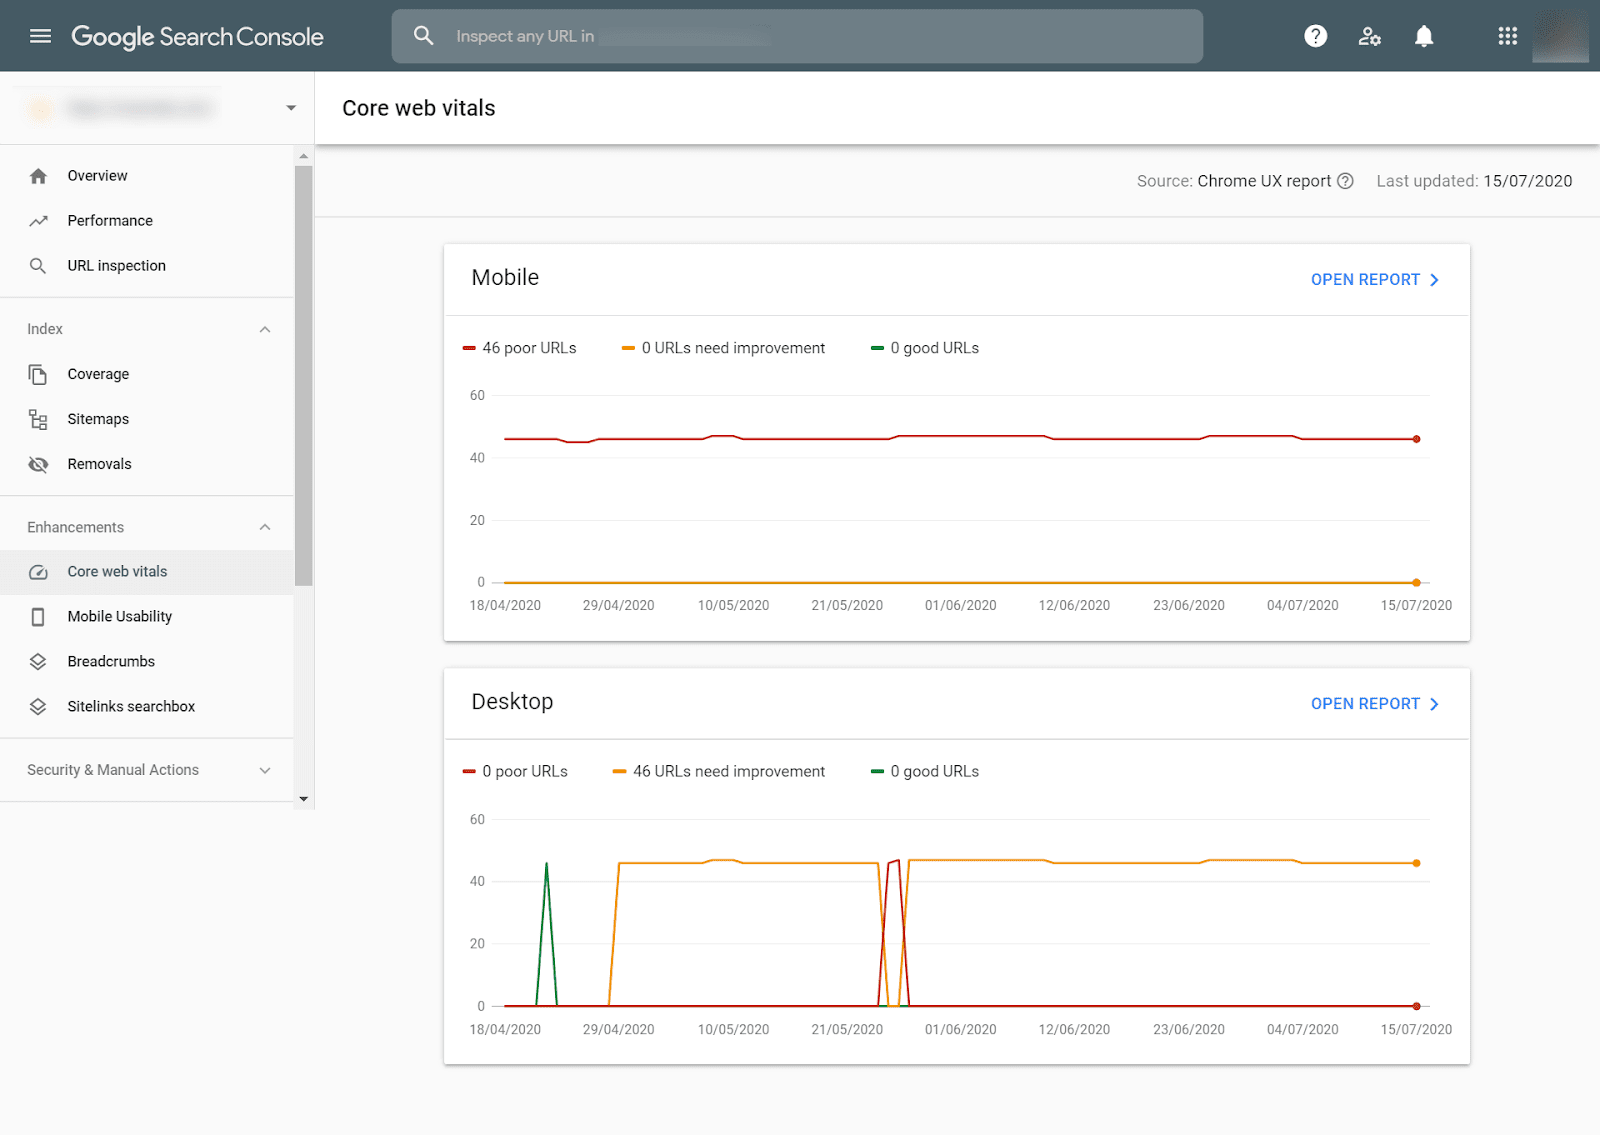 Tampilan data Core Web Vitals di Google Search Console